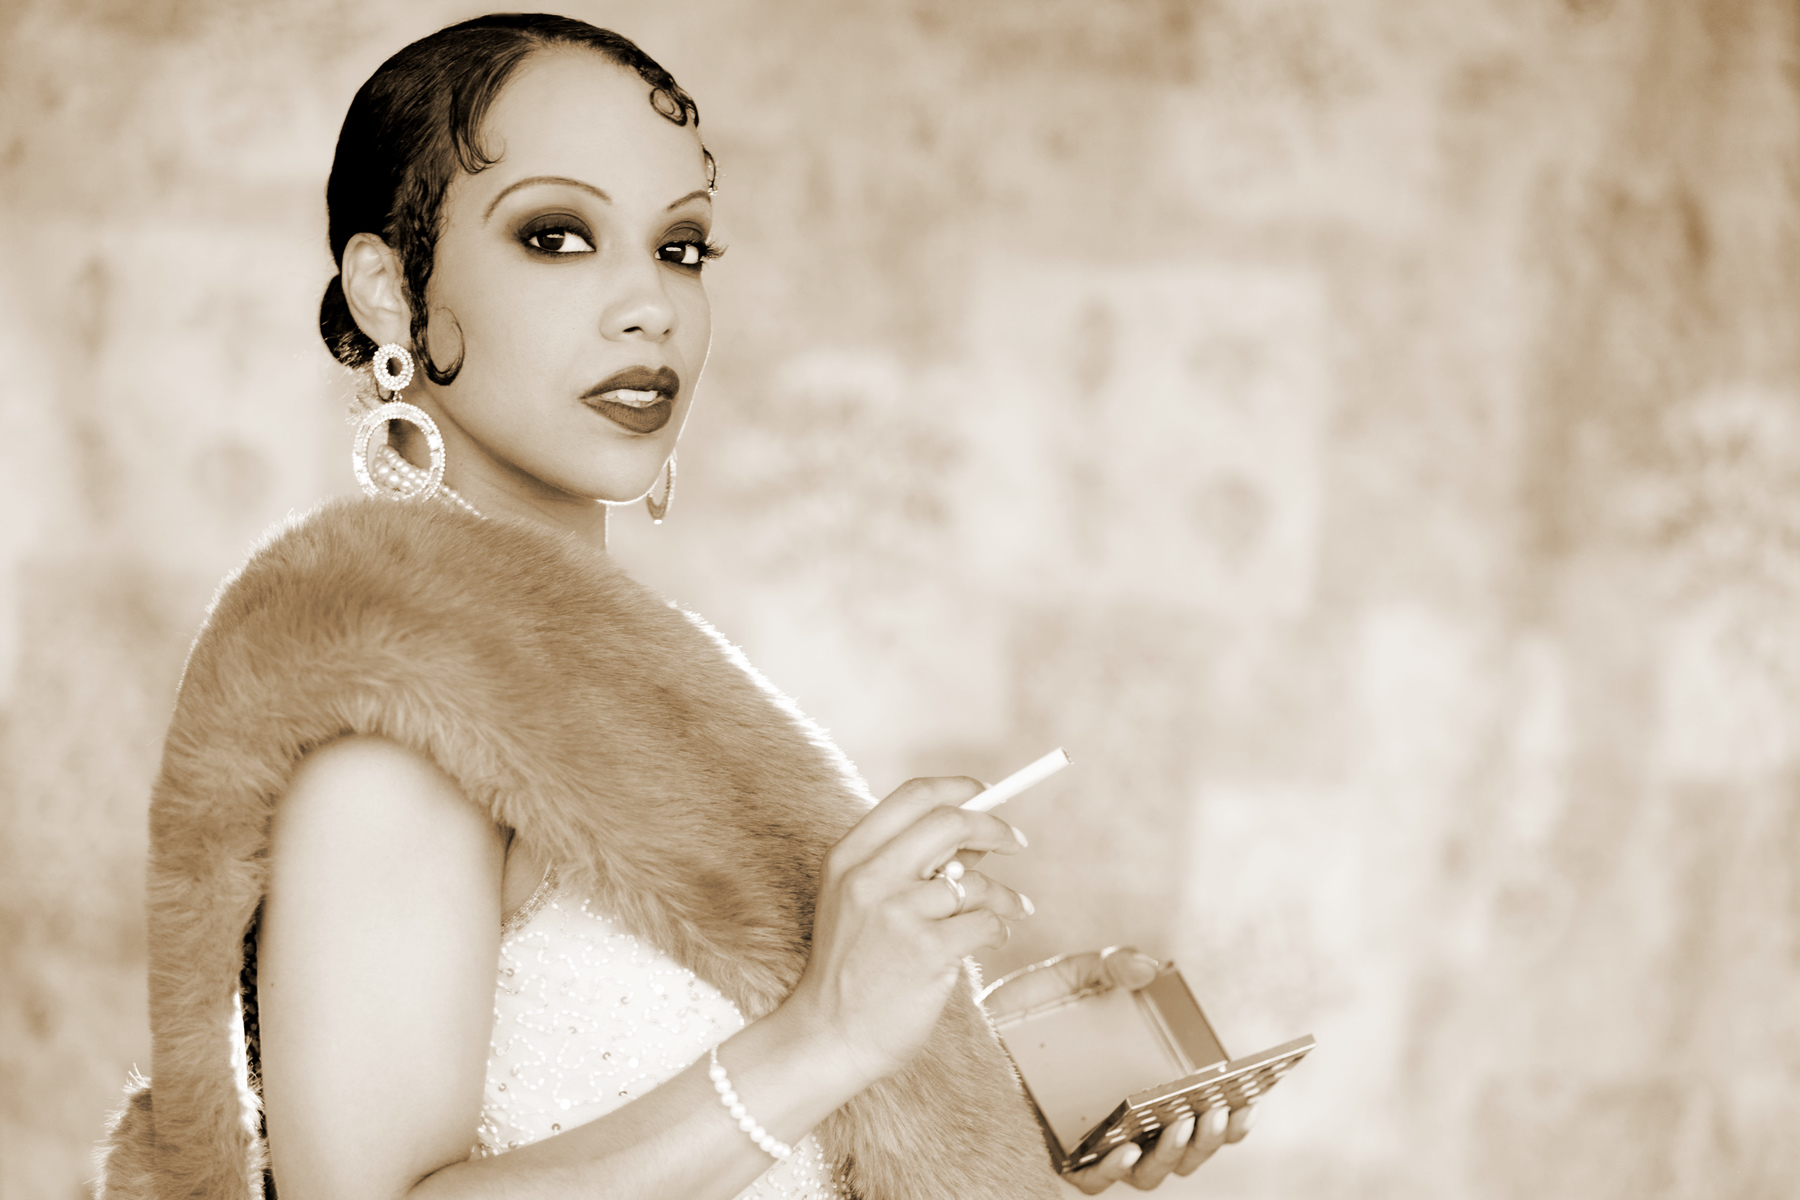 Actor emulation Josephine Baker